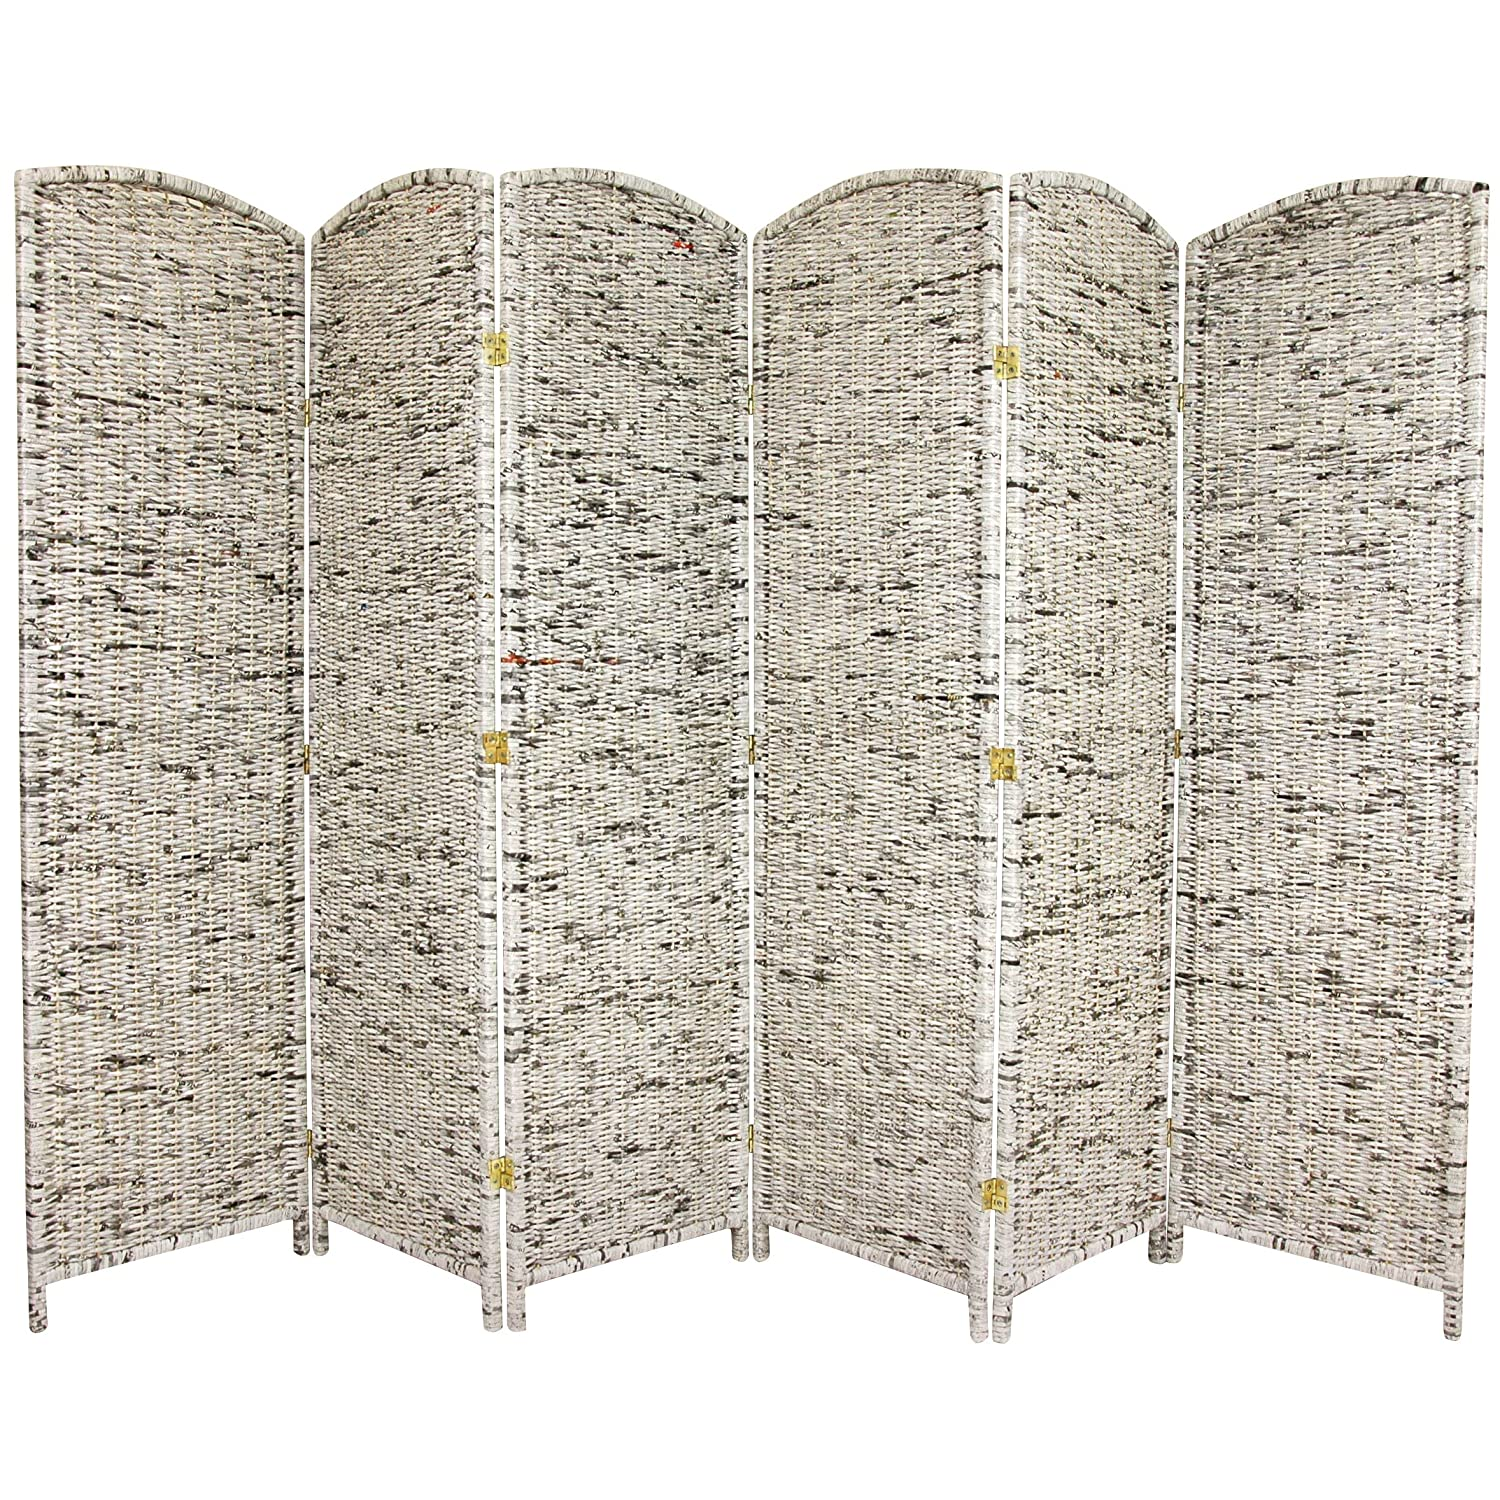 ORIENTAL Furniture 6-Feet Tall Recycled Newspaper Room Divider, 4 Panels